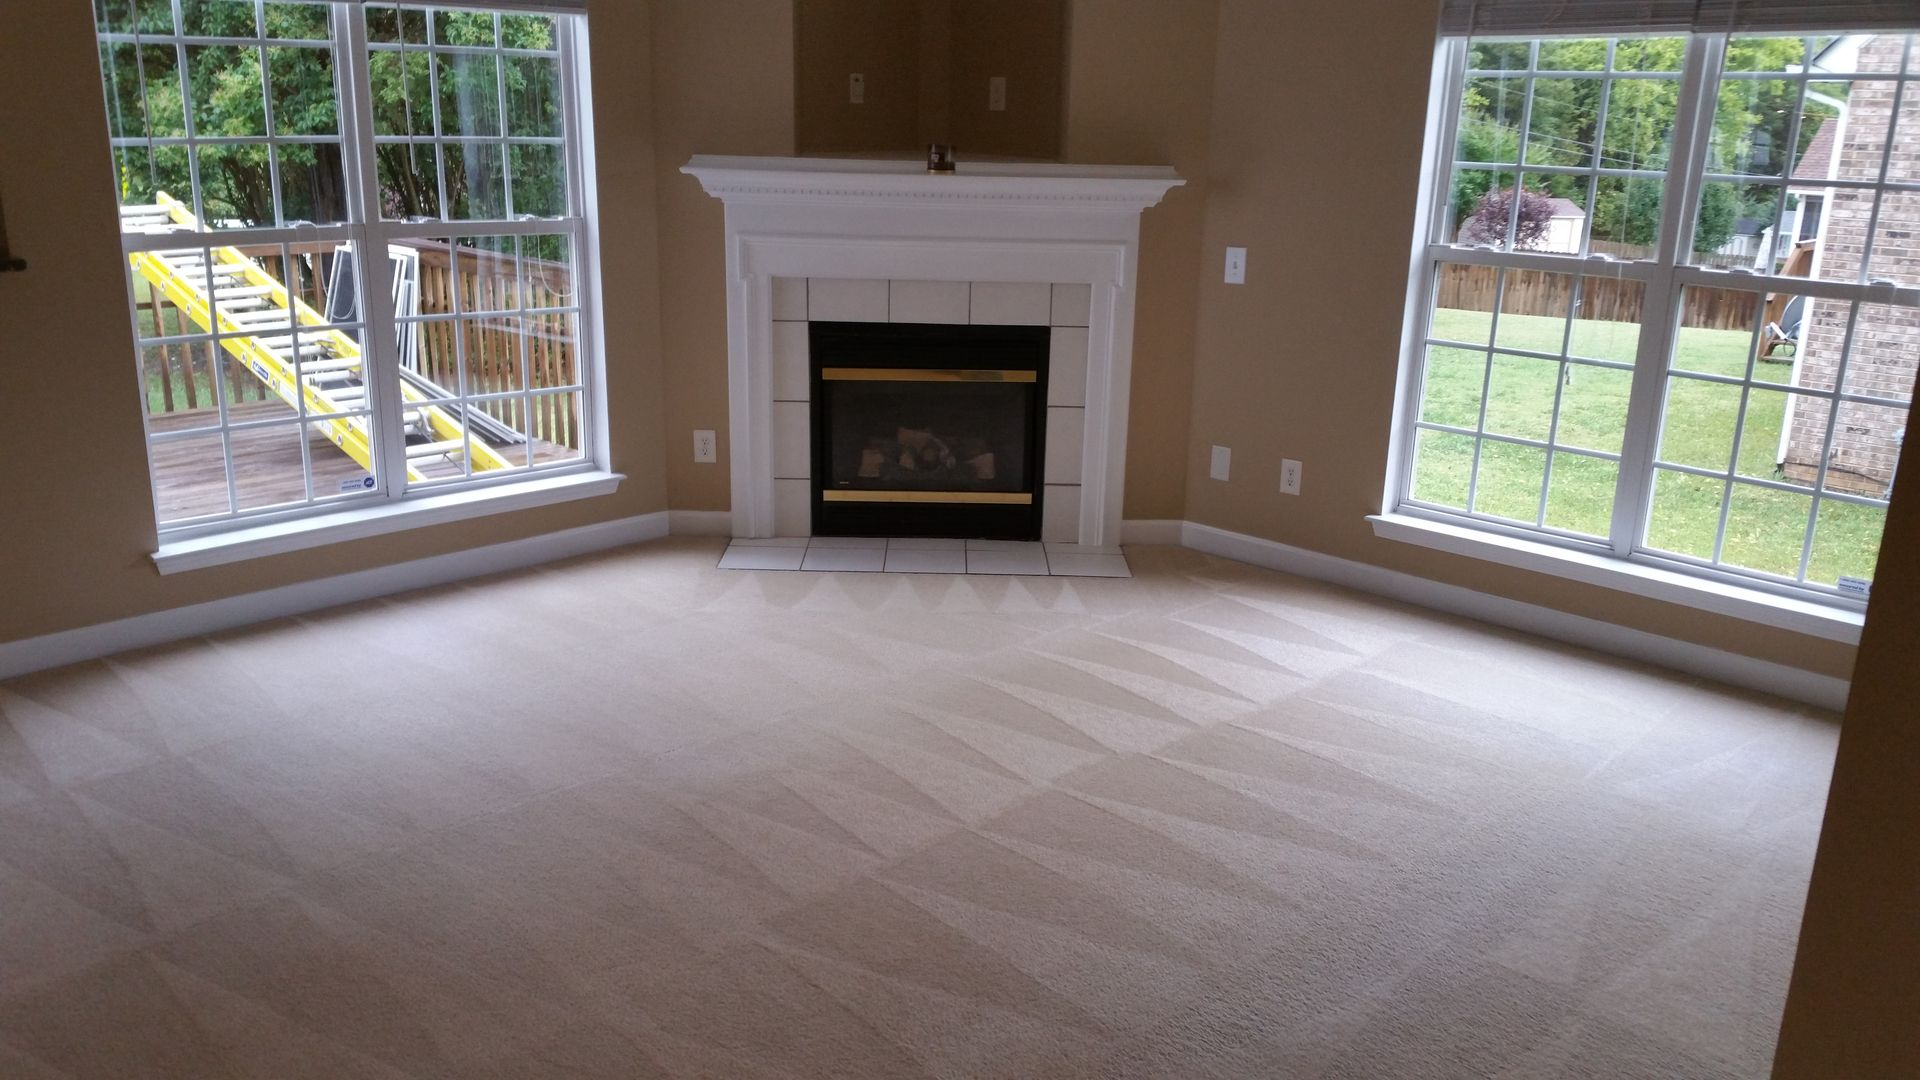 Professional Carpet Steam Cleaning Only 119 For 6 Rooms Or 99 For 5 Rooms Or 149 Whole House Carp Carpet Steam How To Clean Carpet Steam Clean Carpet